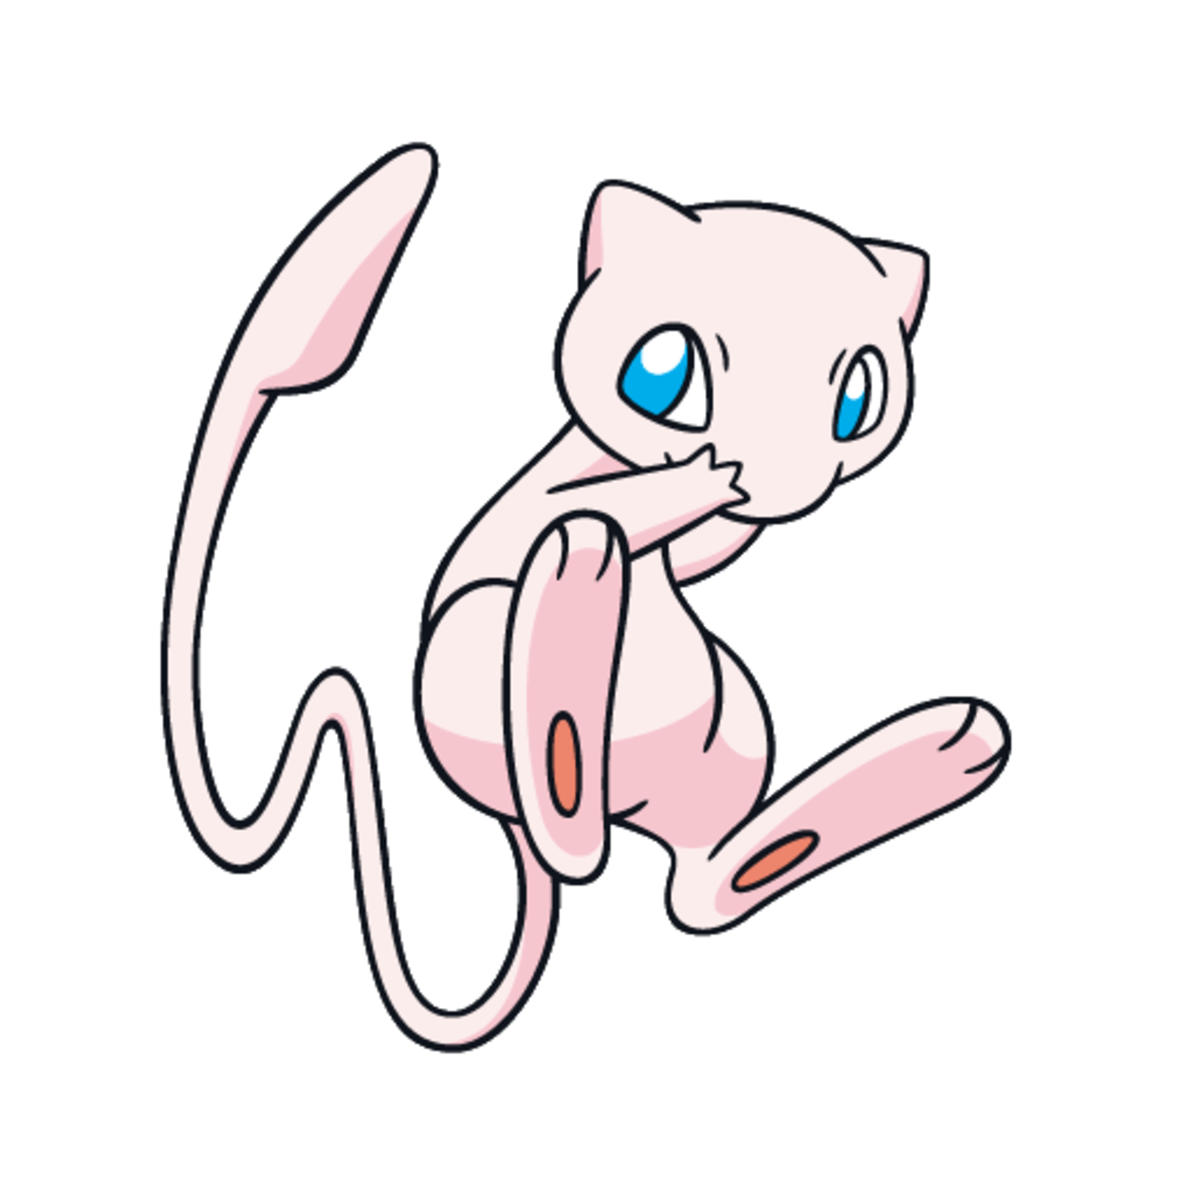 How to Catch Mew in Pokémon Go